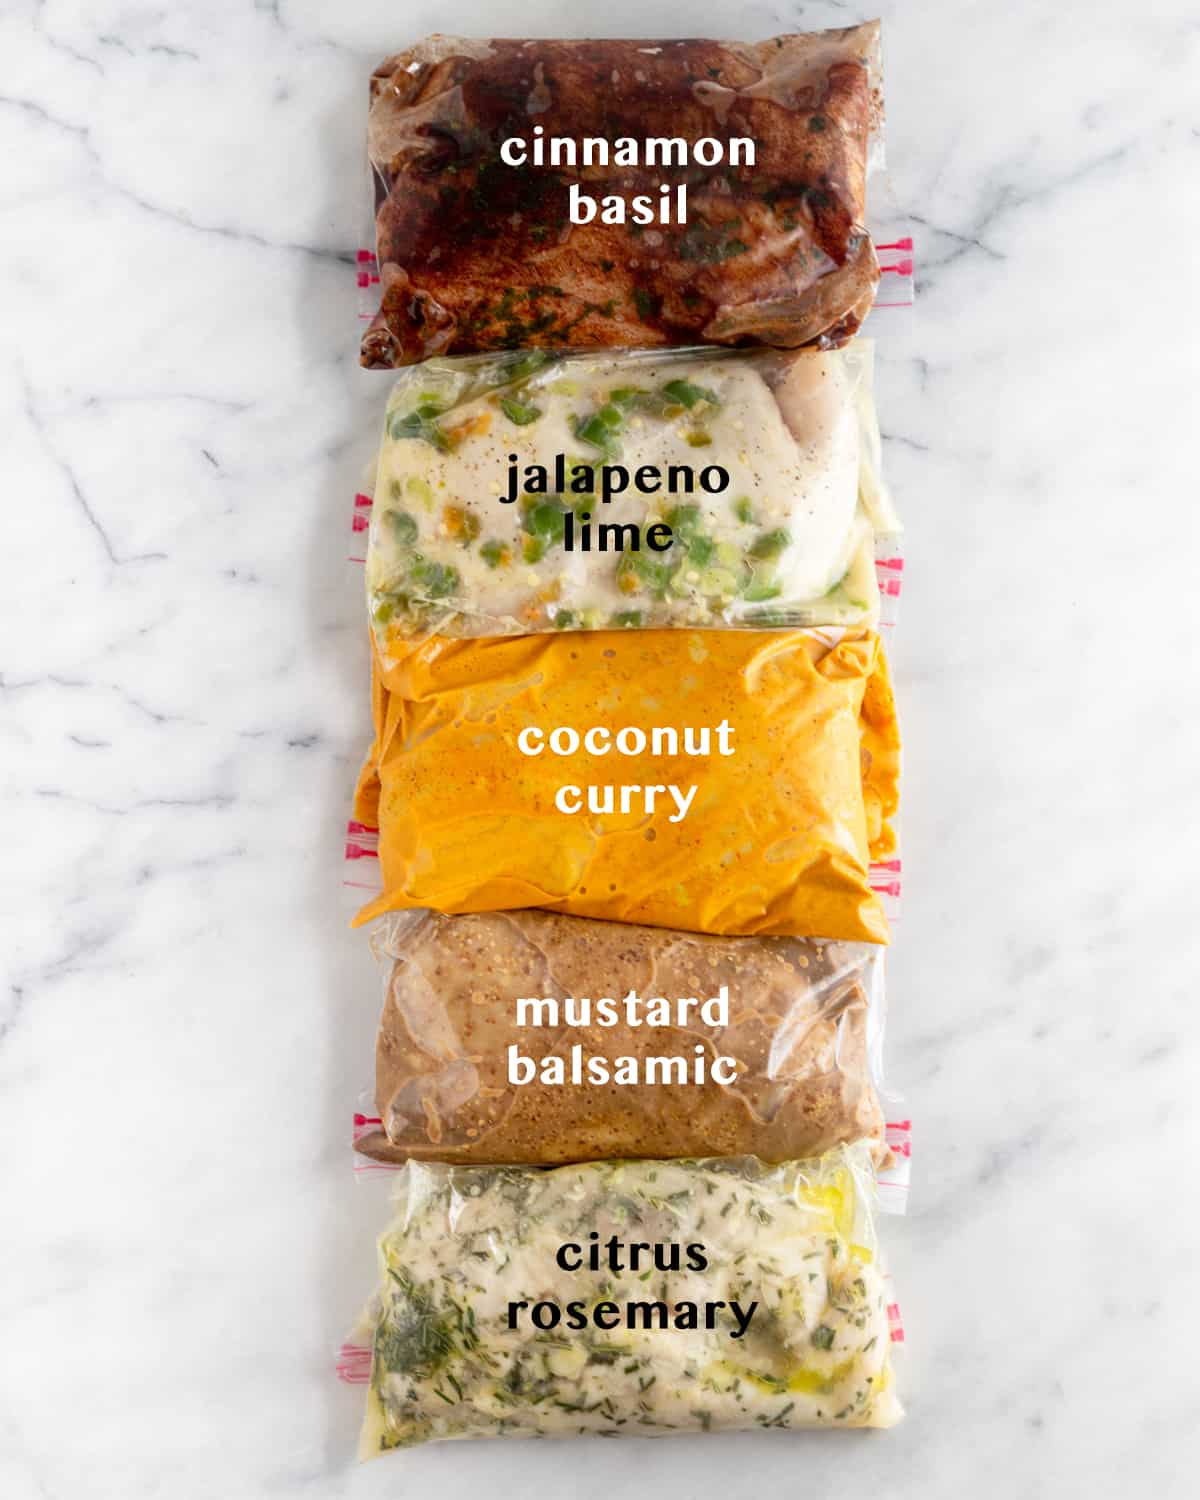 Image from Eat The Grains